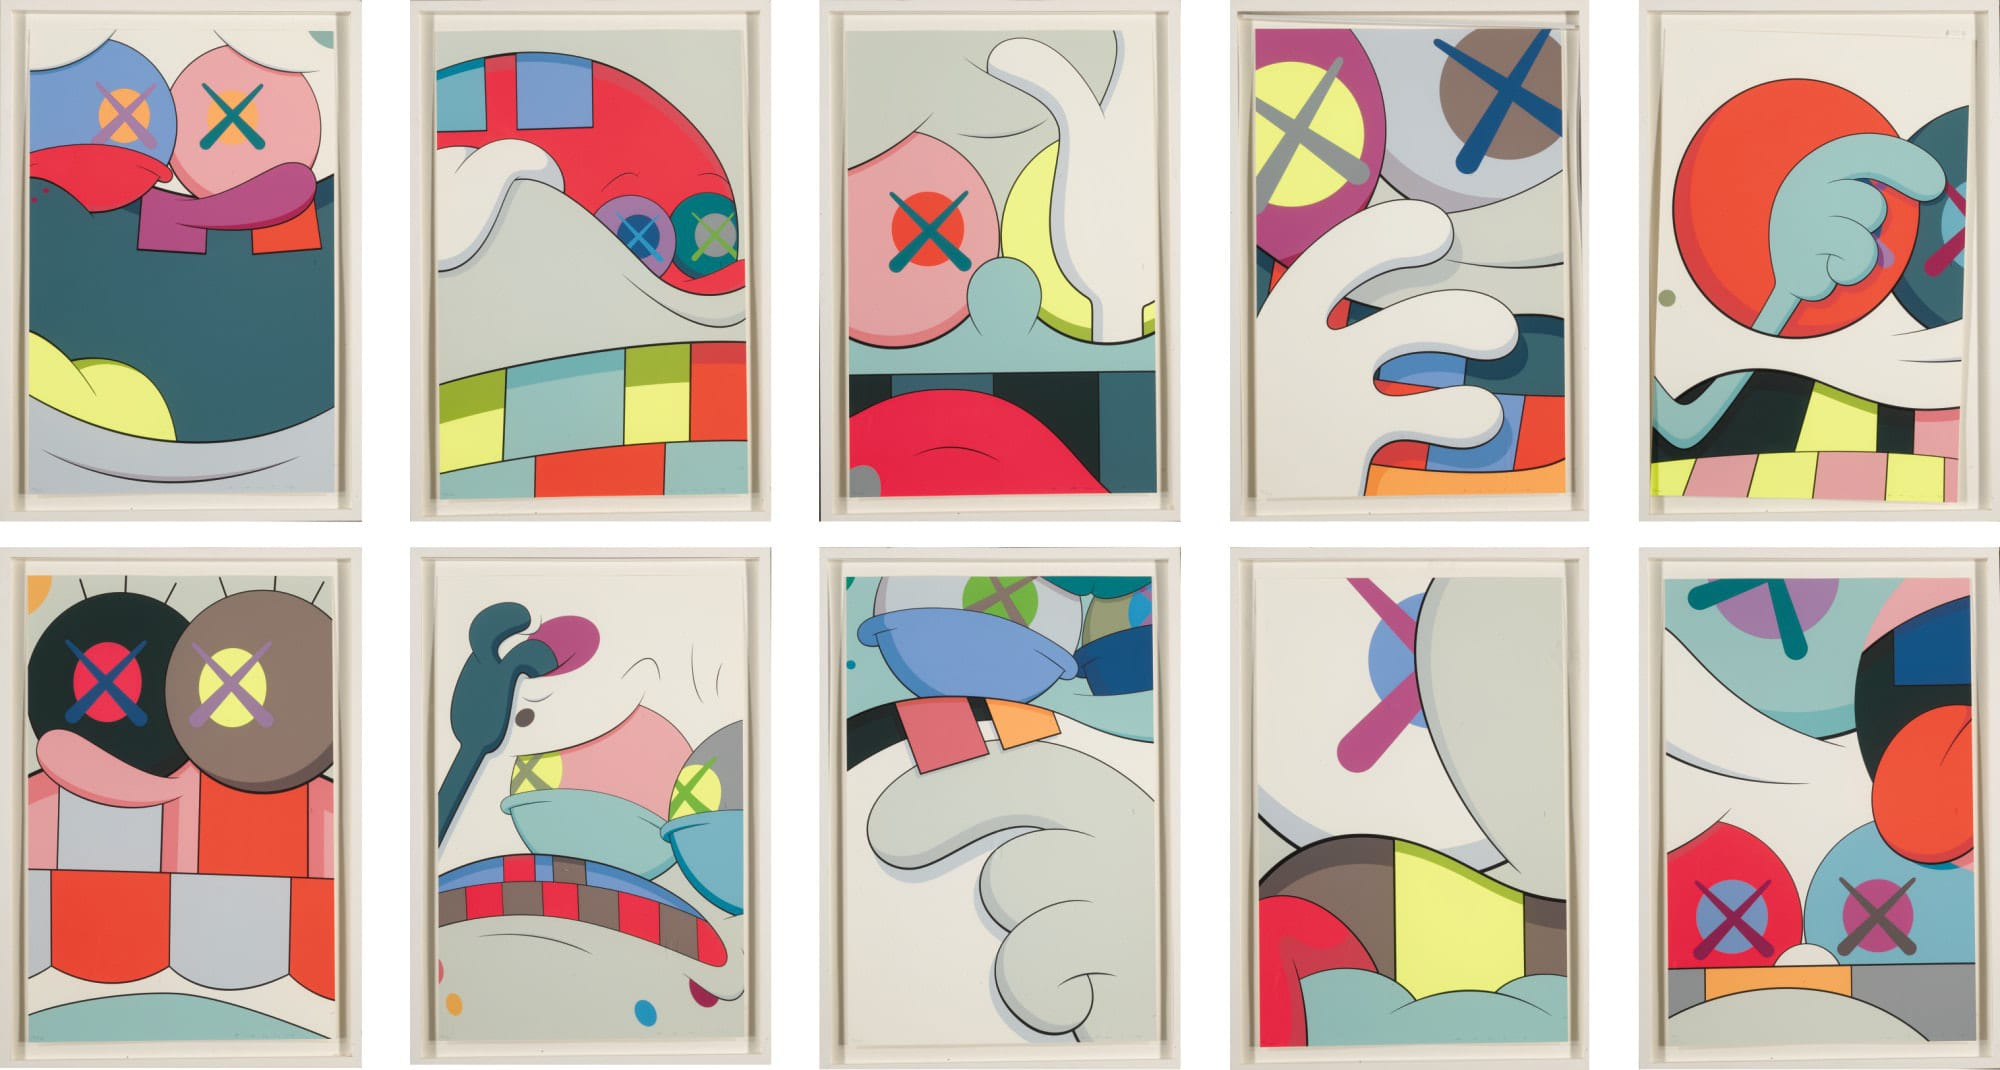 The graffiti artist from Jersey who disrupted the Art World, Reasons To Invest In KAWS